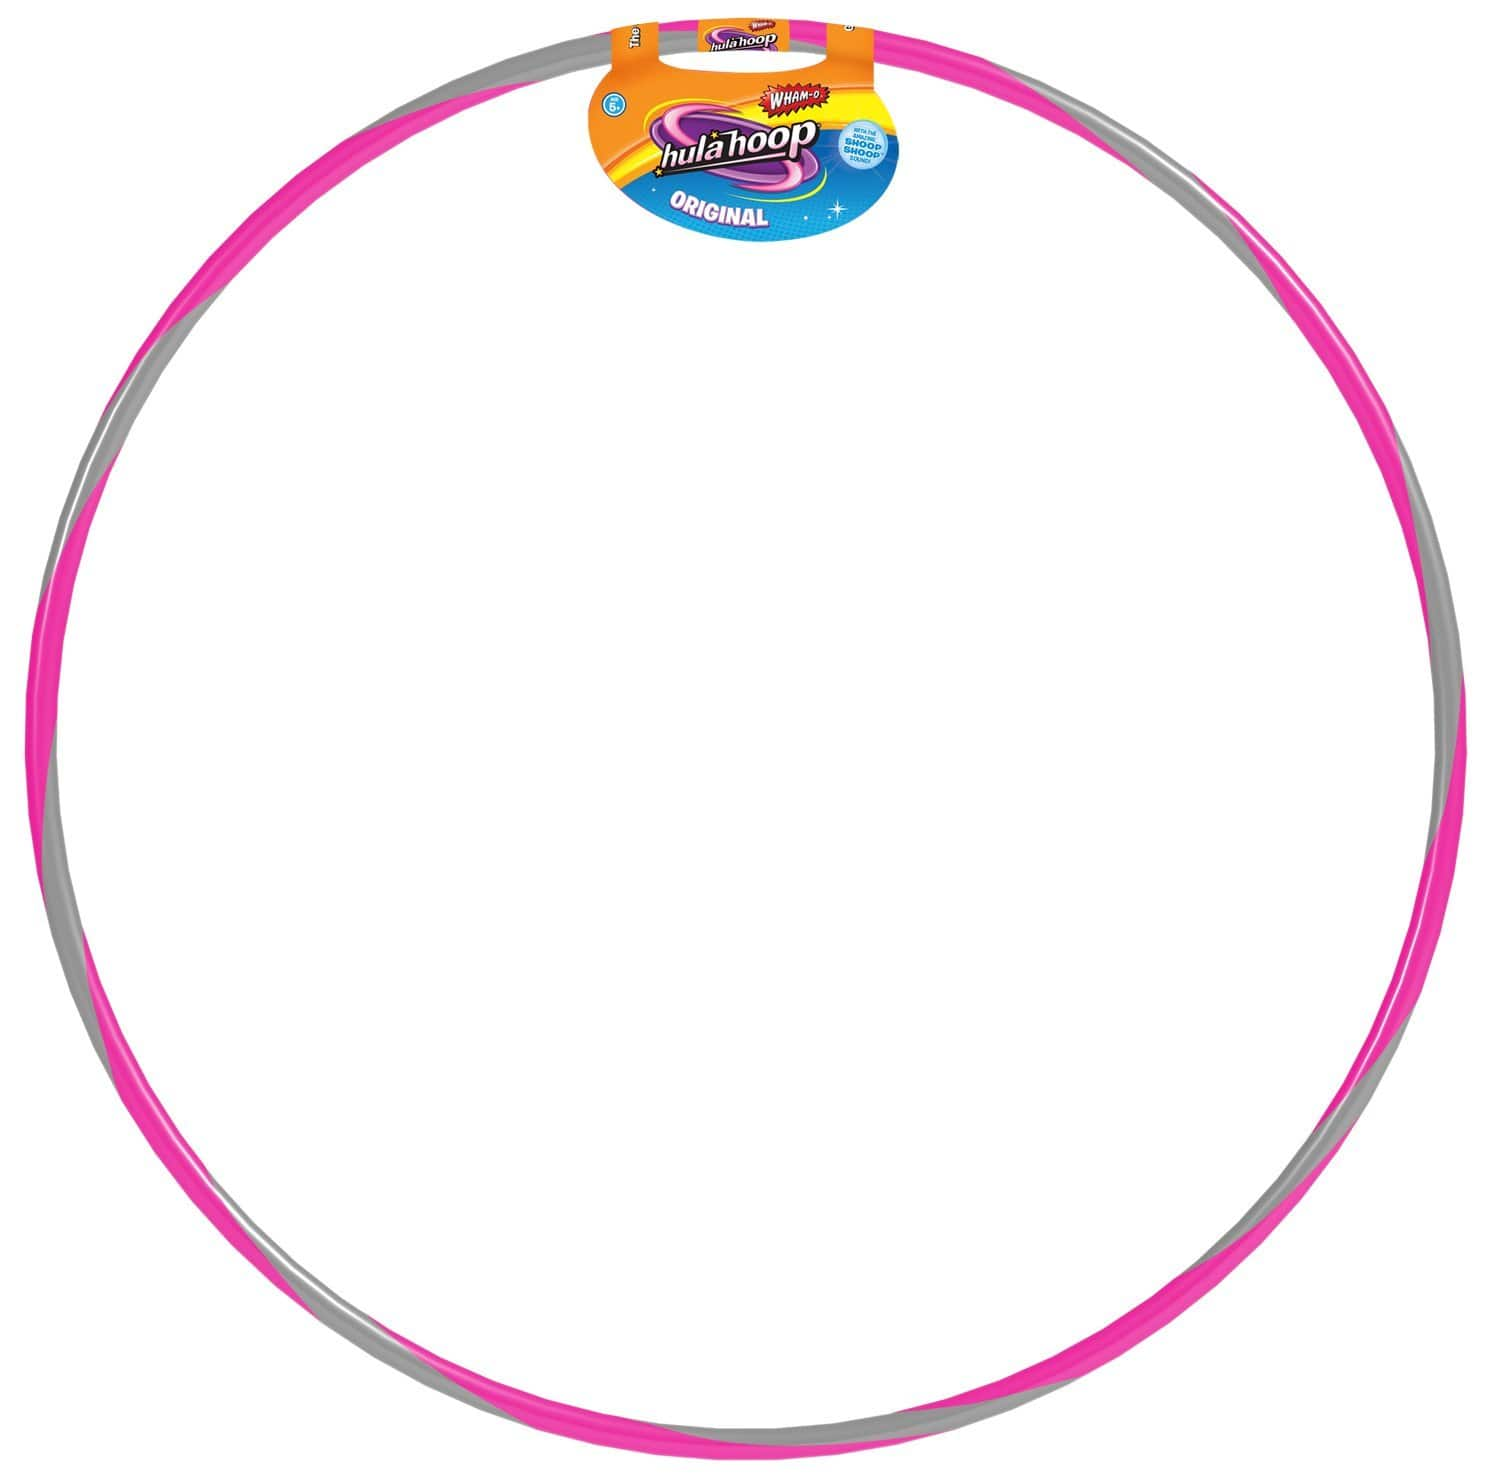 Wham-O 81553 Original Striped Hula Hoop- $8.74 at Amazon + FS with Prime